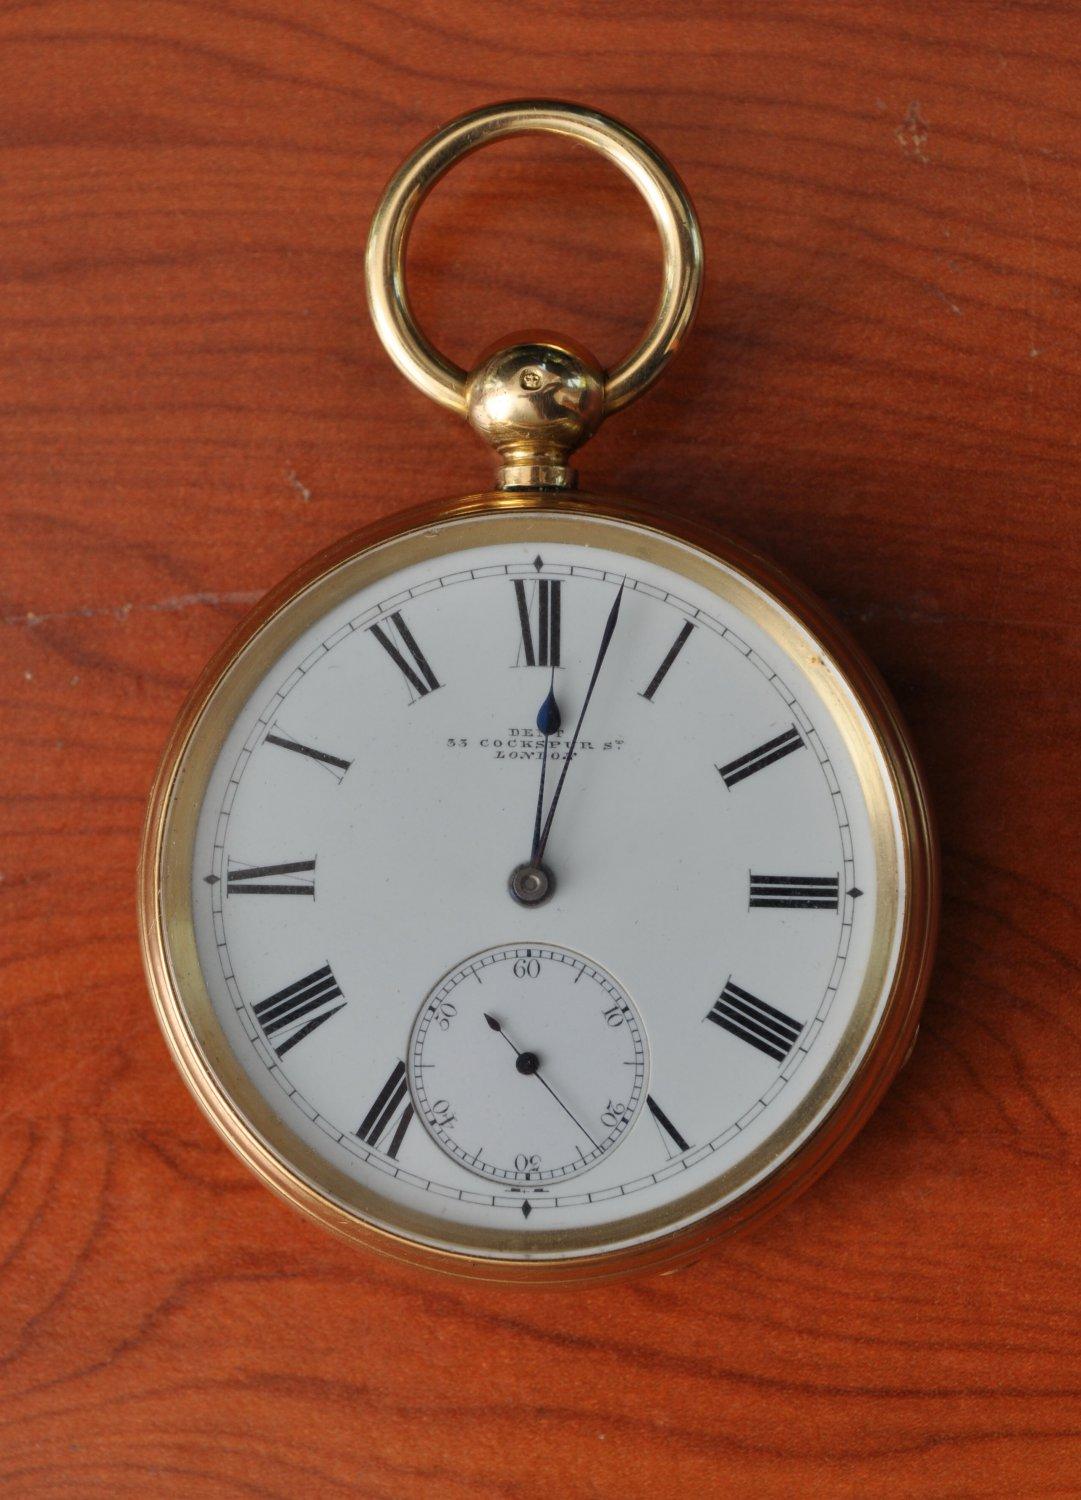 1875 London 18ct gold open face chronometer pocket watch by M.F. Dent in working order.